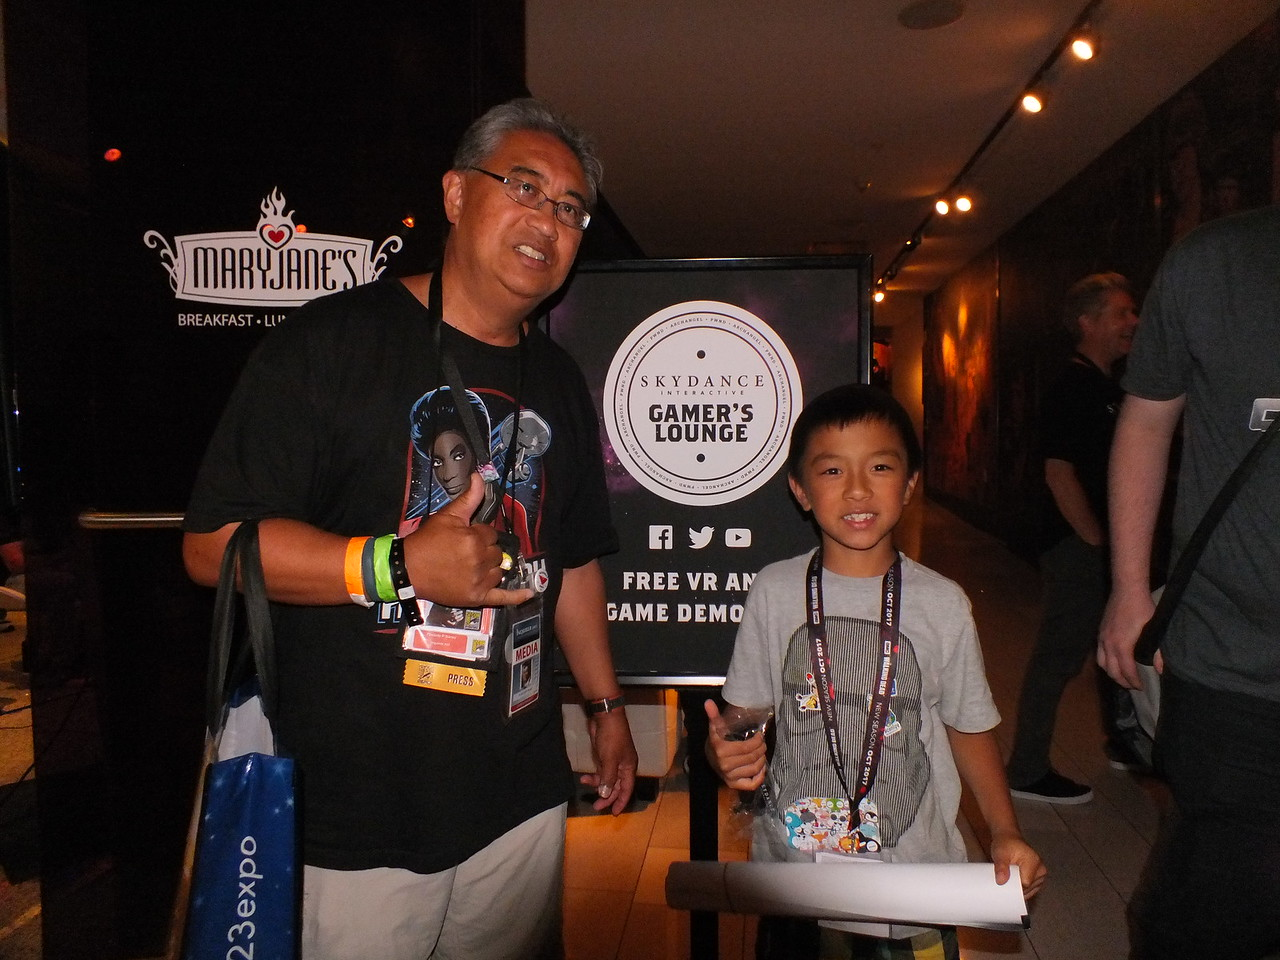 FilAm Gamers take part in the free demonstrations at the Hard Rock Hotel of Virtual Reality (VR) games during the Skydance Interactive Party held Thursday July 20 as part of the SDCC.